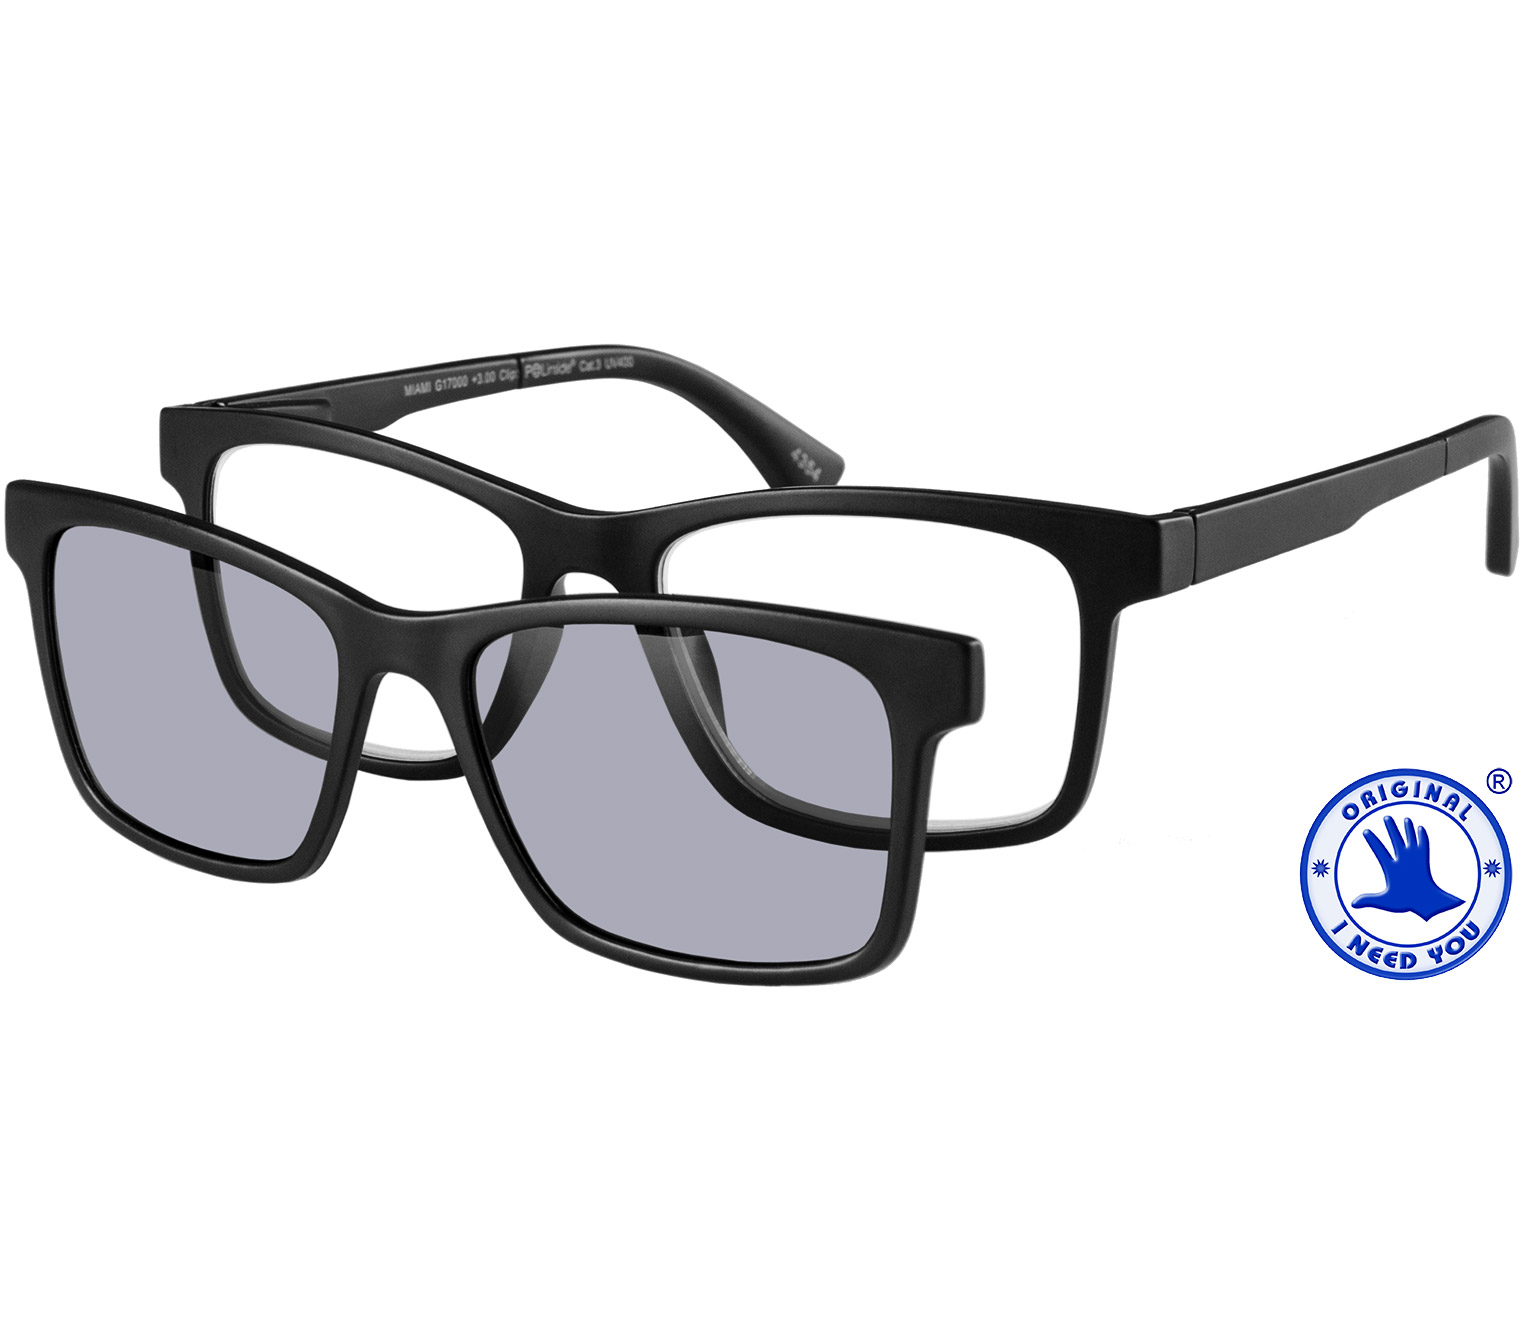 Main Image (Angle) - Switch (Black) Magnetic Clip On Sun Readers